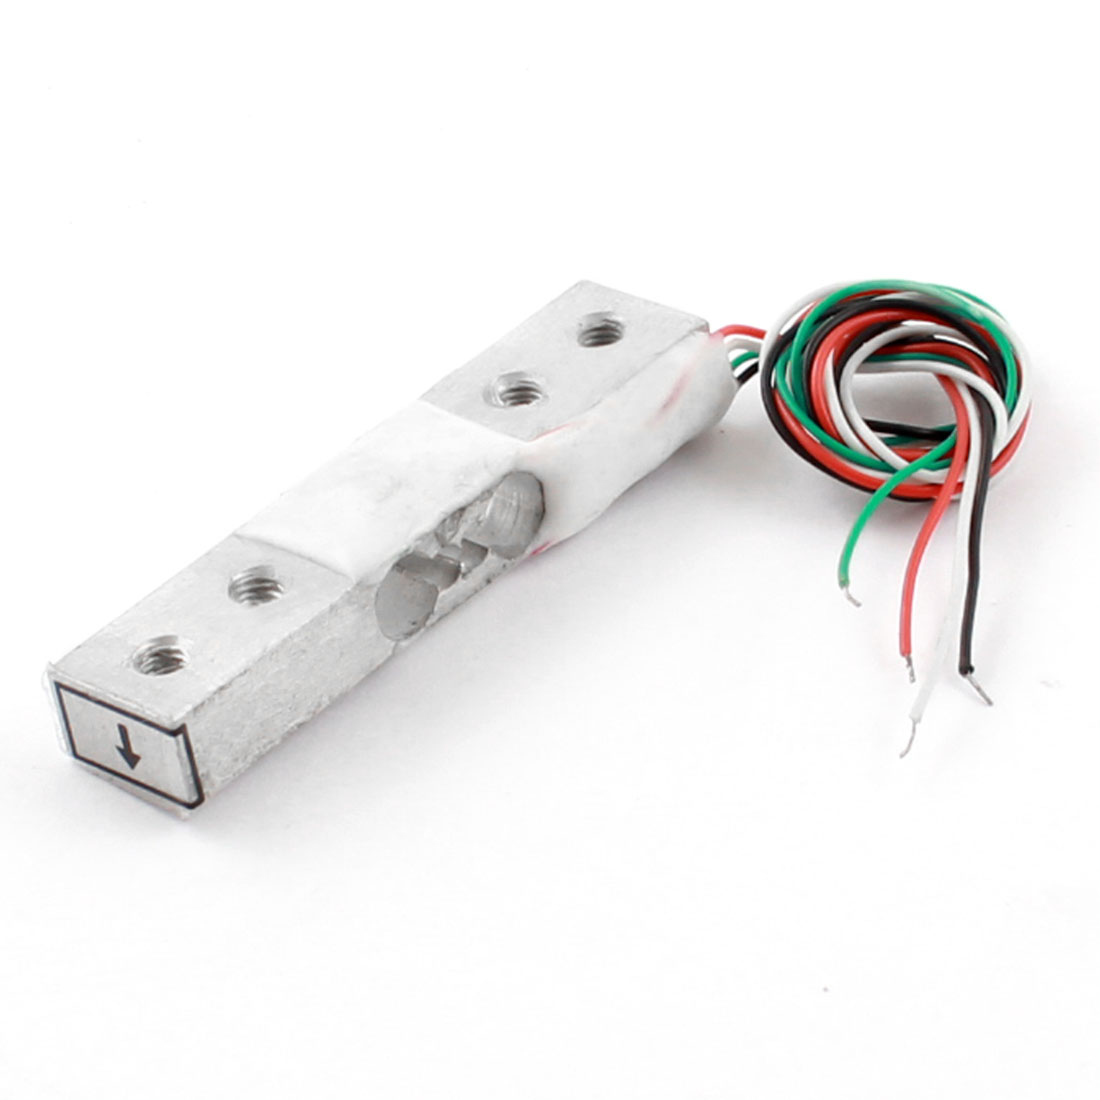 500g 1.1lb 4-Wired Rectangle Aluminium Alloy Platform Scale Micro Load Cell Weighting Pressure Sensor